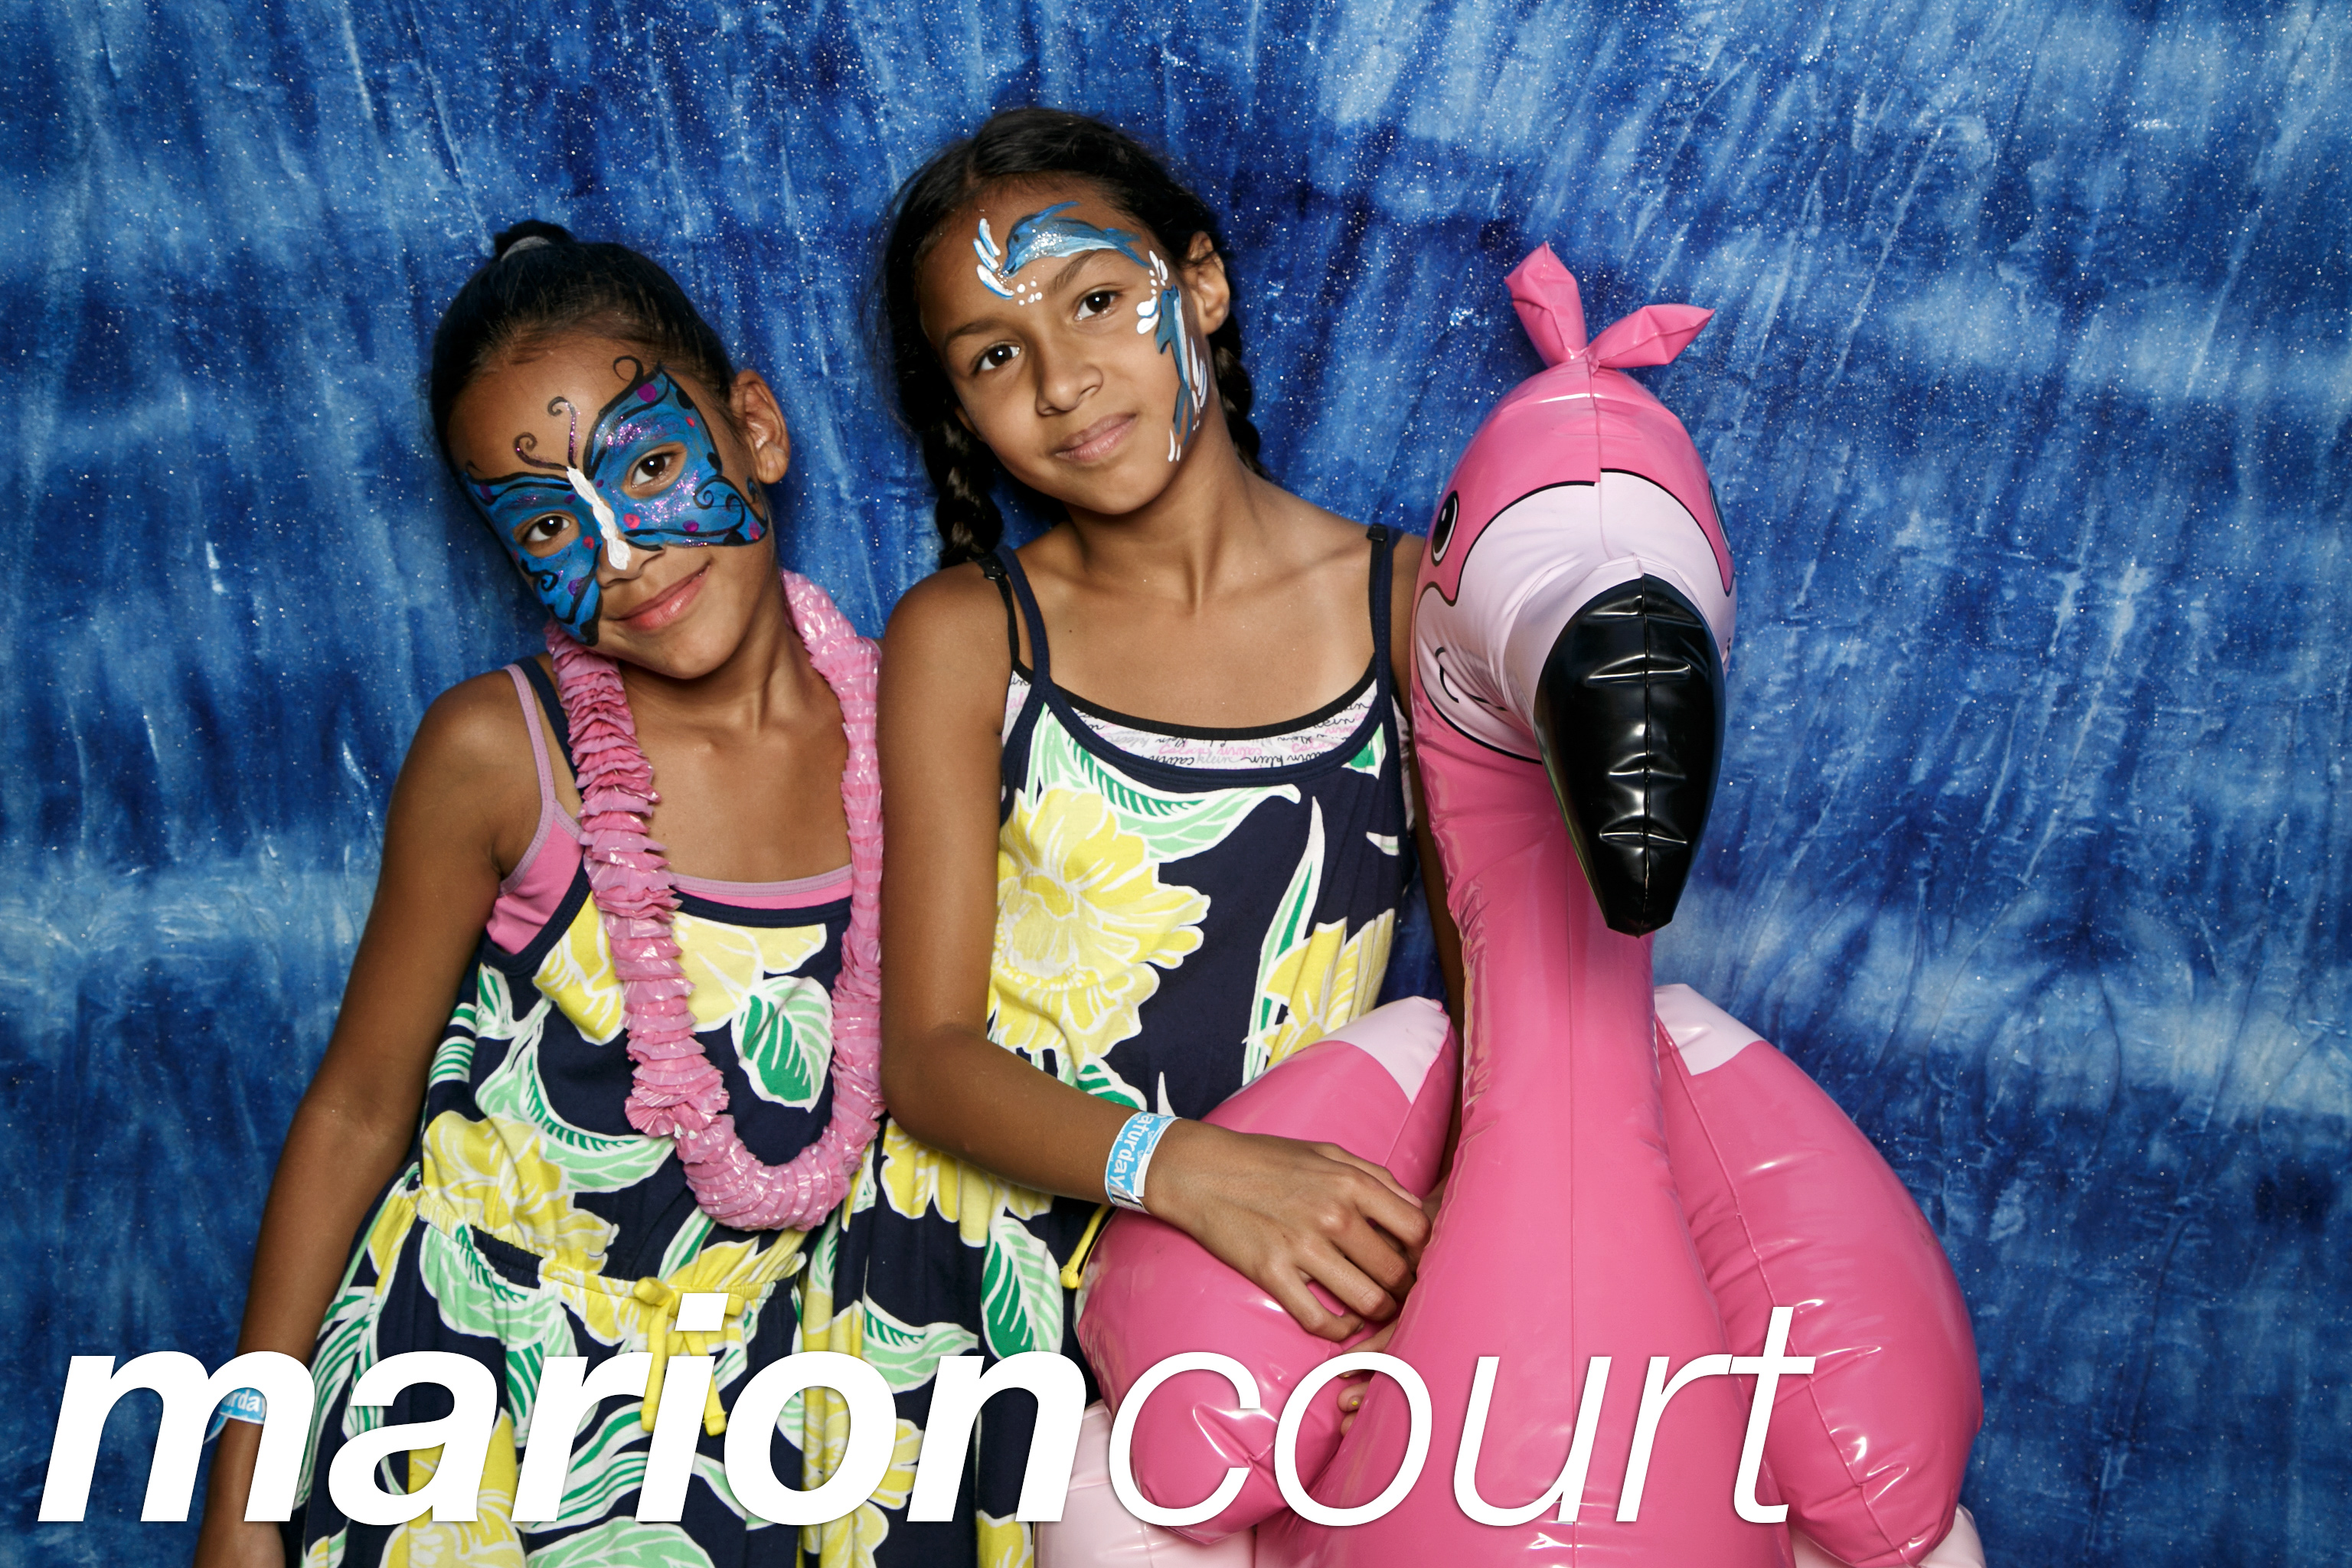 photo booth portraits from the marion court block party, august 2016